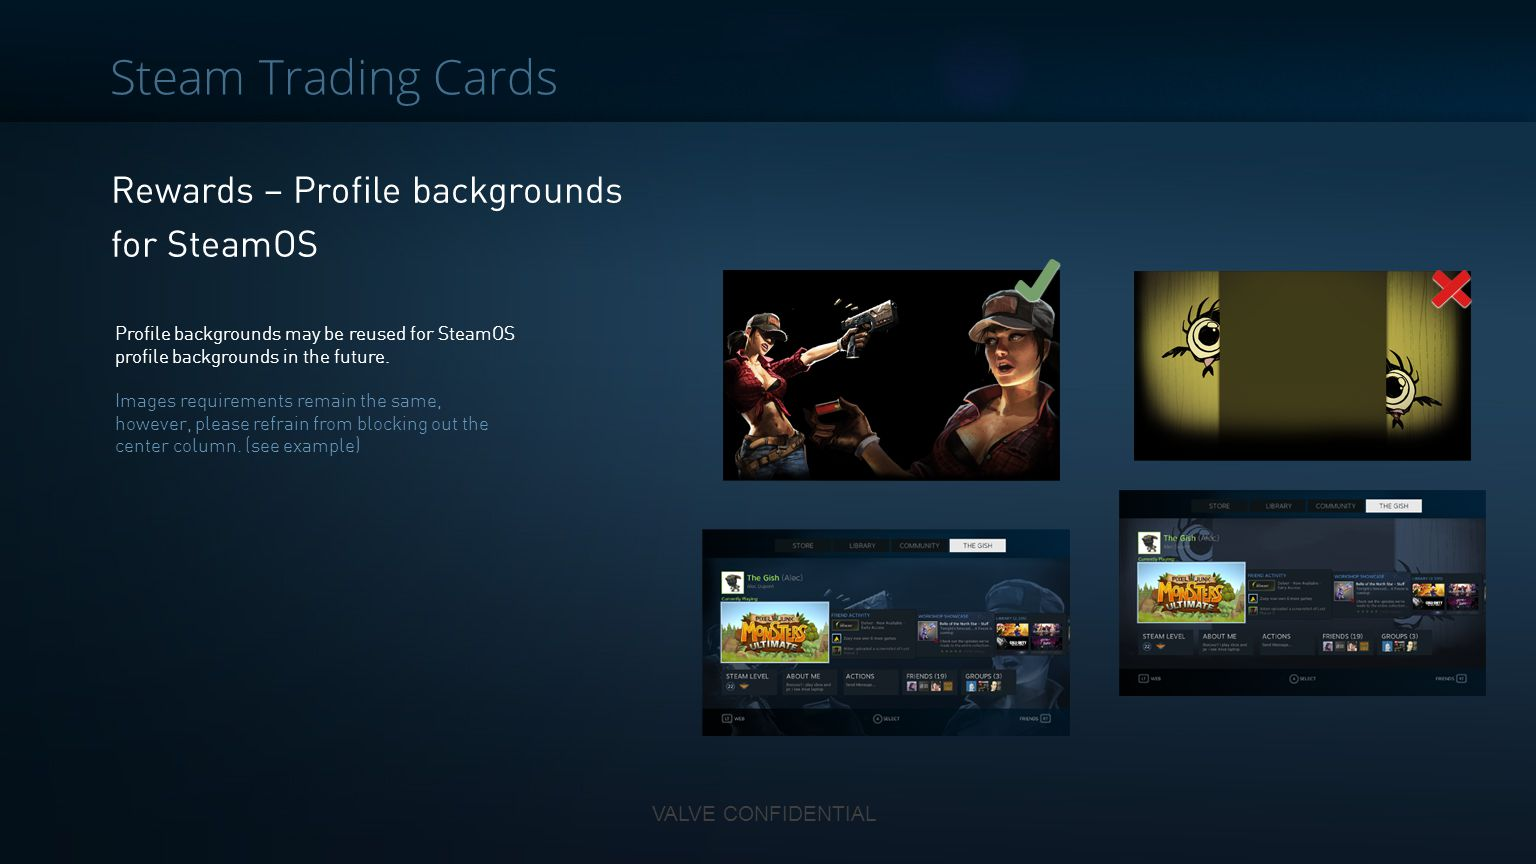 Steam Trading Cards Rewards – Profile backgrounds for SteamOS